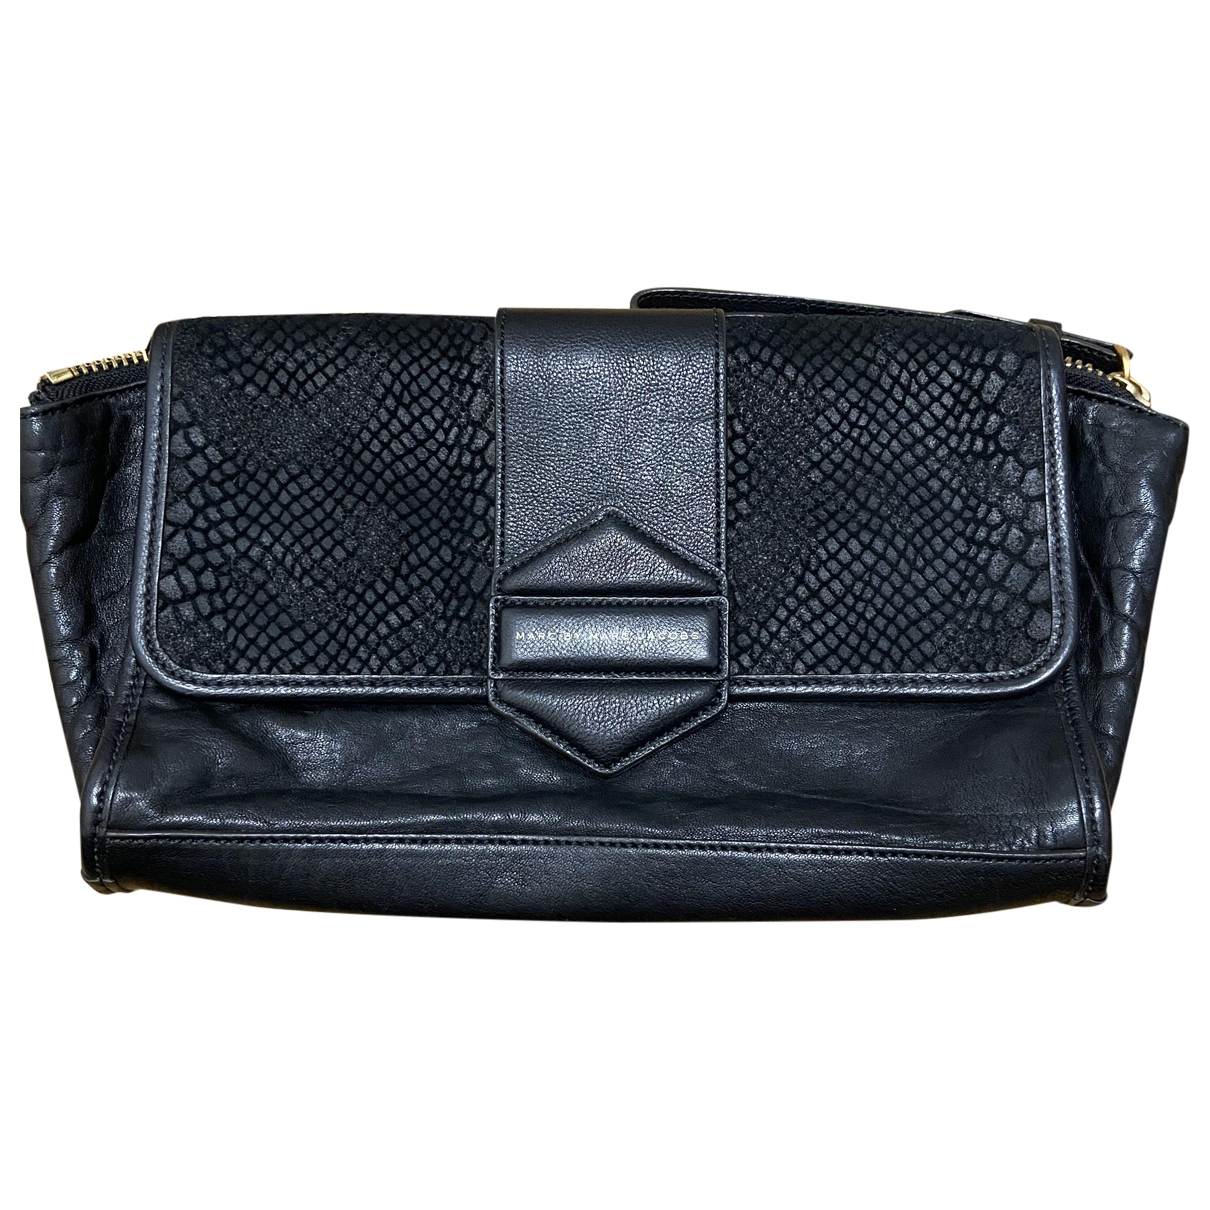 Marc By Marc Jacobs \N Clutch in  Schwarz Leder